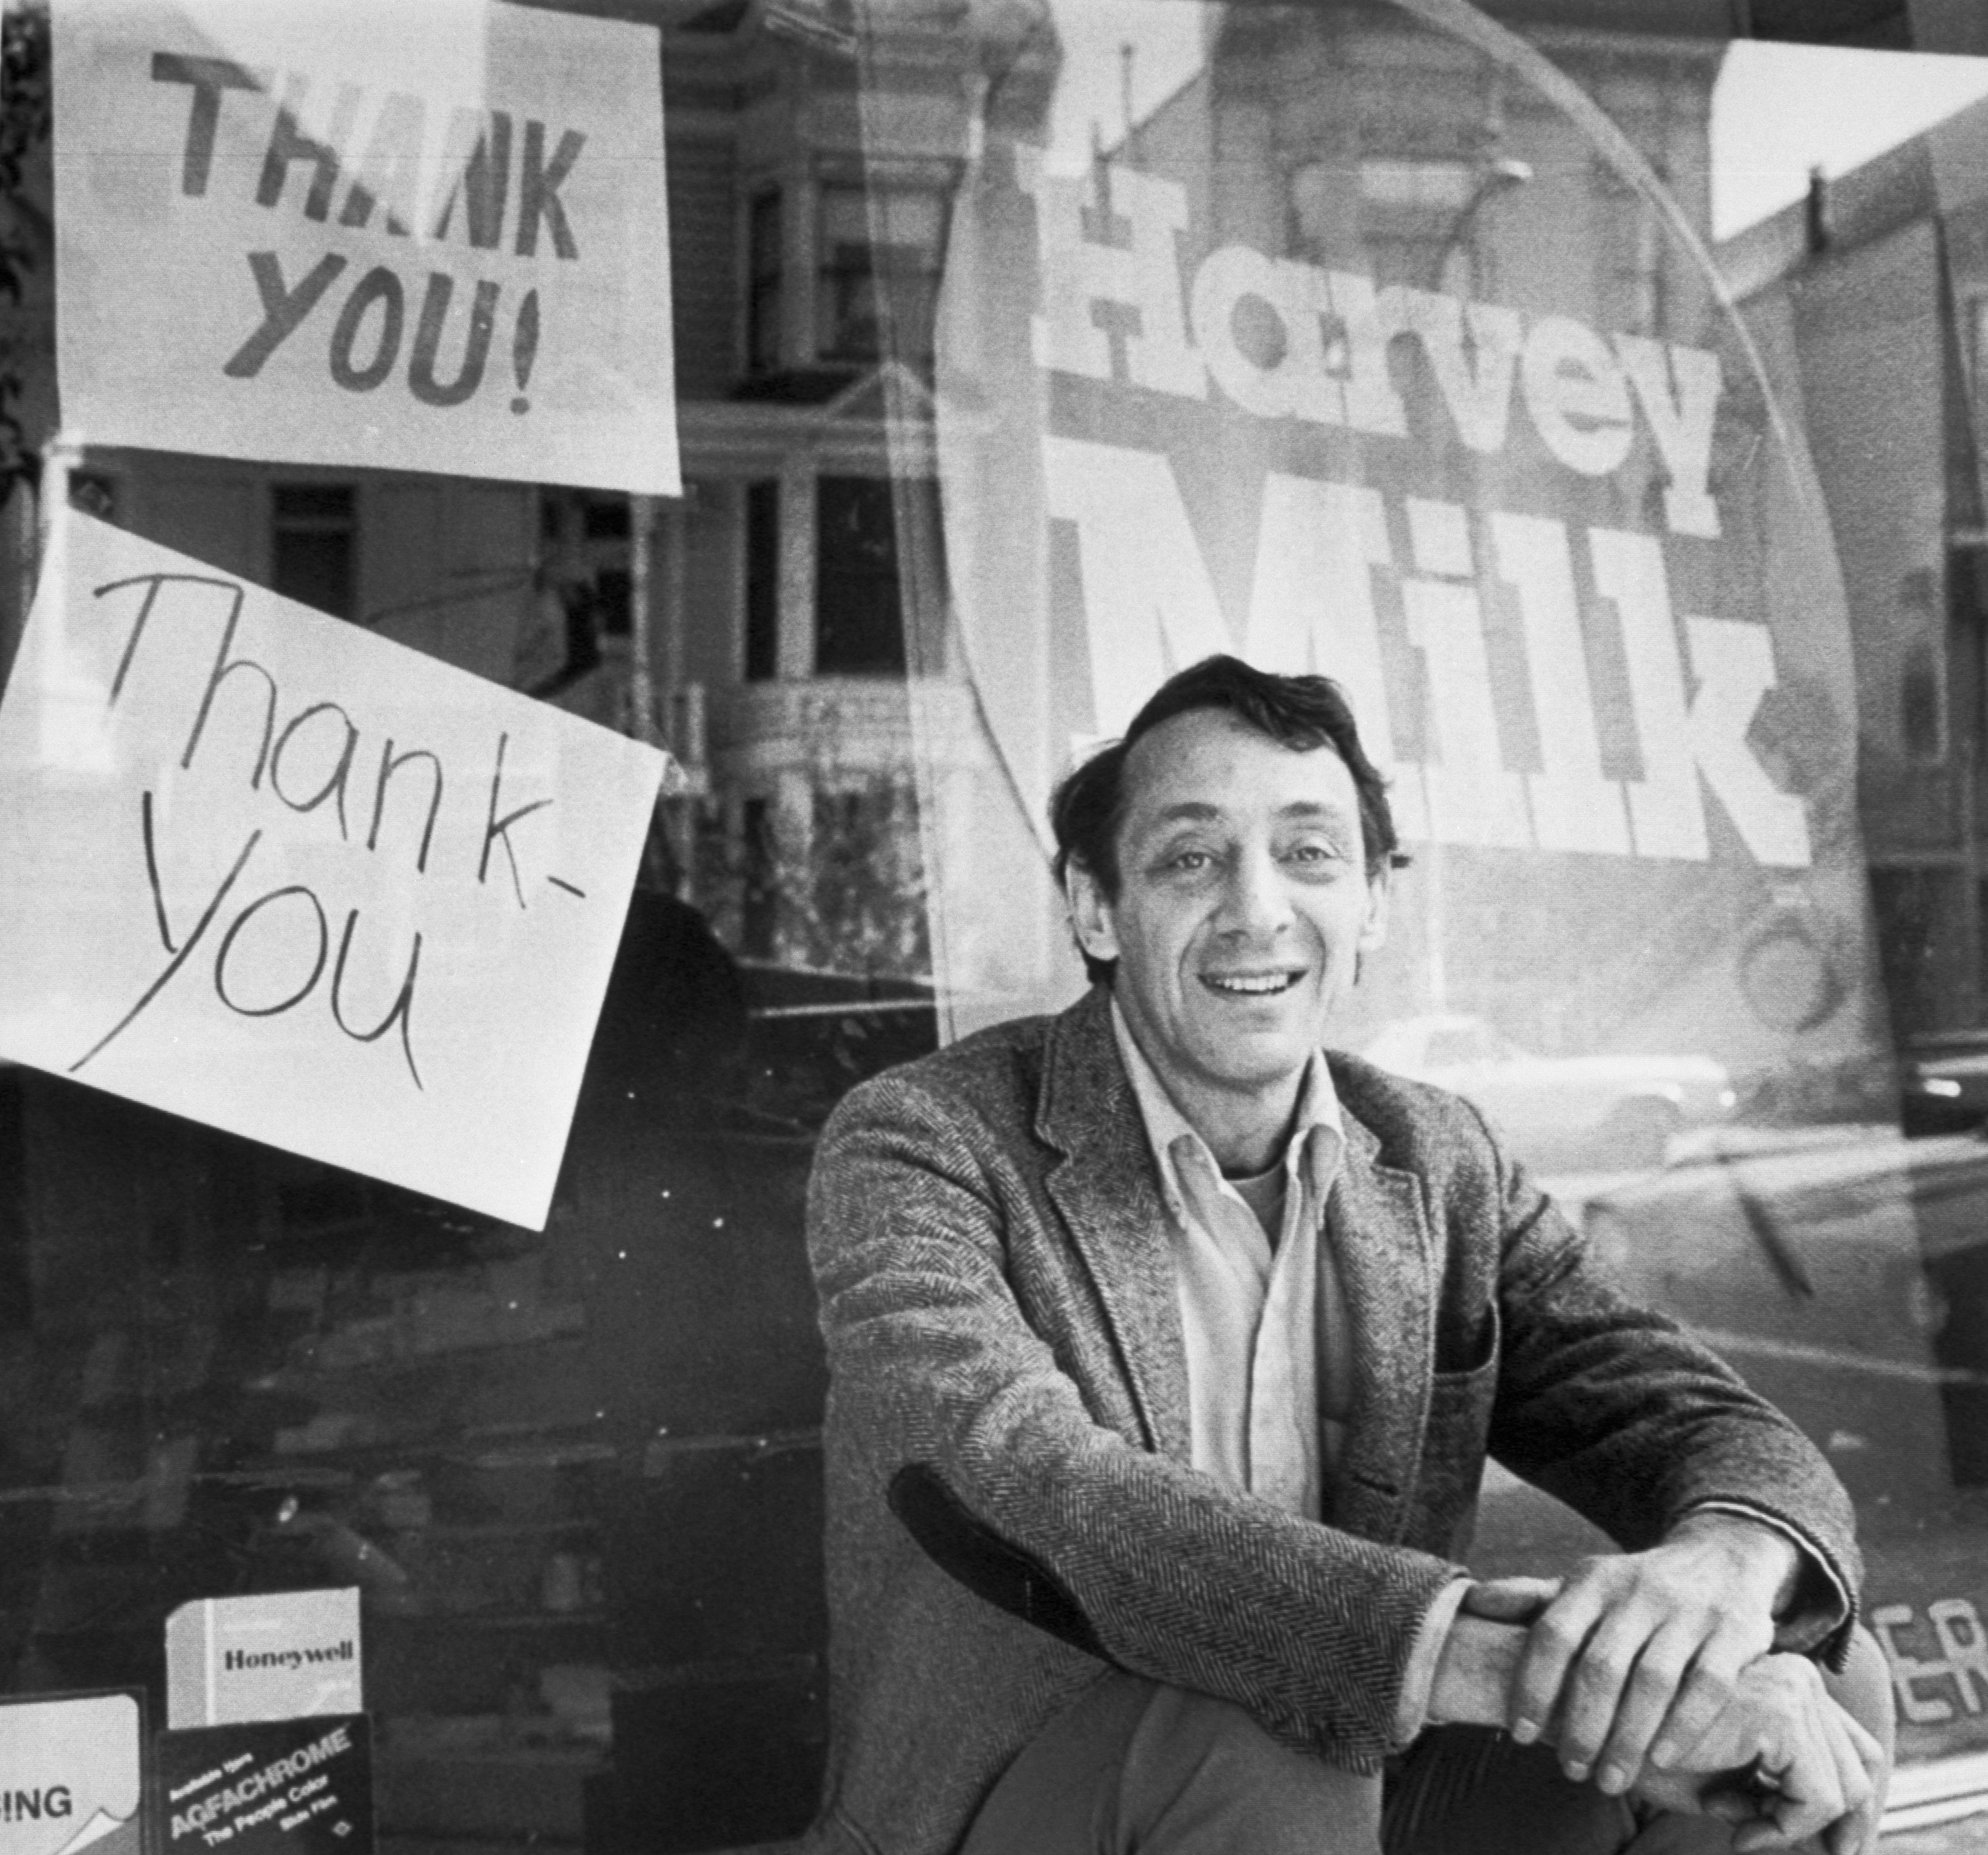 Avowed homosexual, Supervisor Harvey Milk, who was shot and killed along with San Francisco Mayor George Moscone at City Hall 11/27, sits outside his camera shop in a November 9, 1977 photo. Dan White, who recently resigned from the board and then sought reappointment, turned himself in to police shortly after the shooting. Milk was the leader of the opposition to White's reappointment.